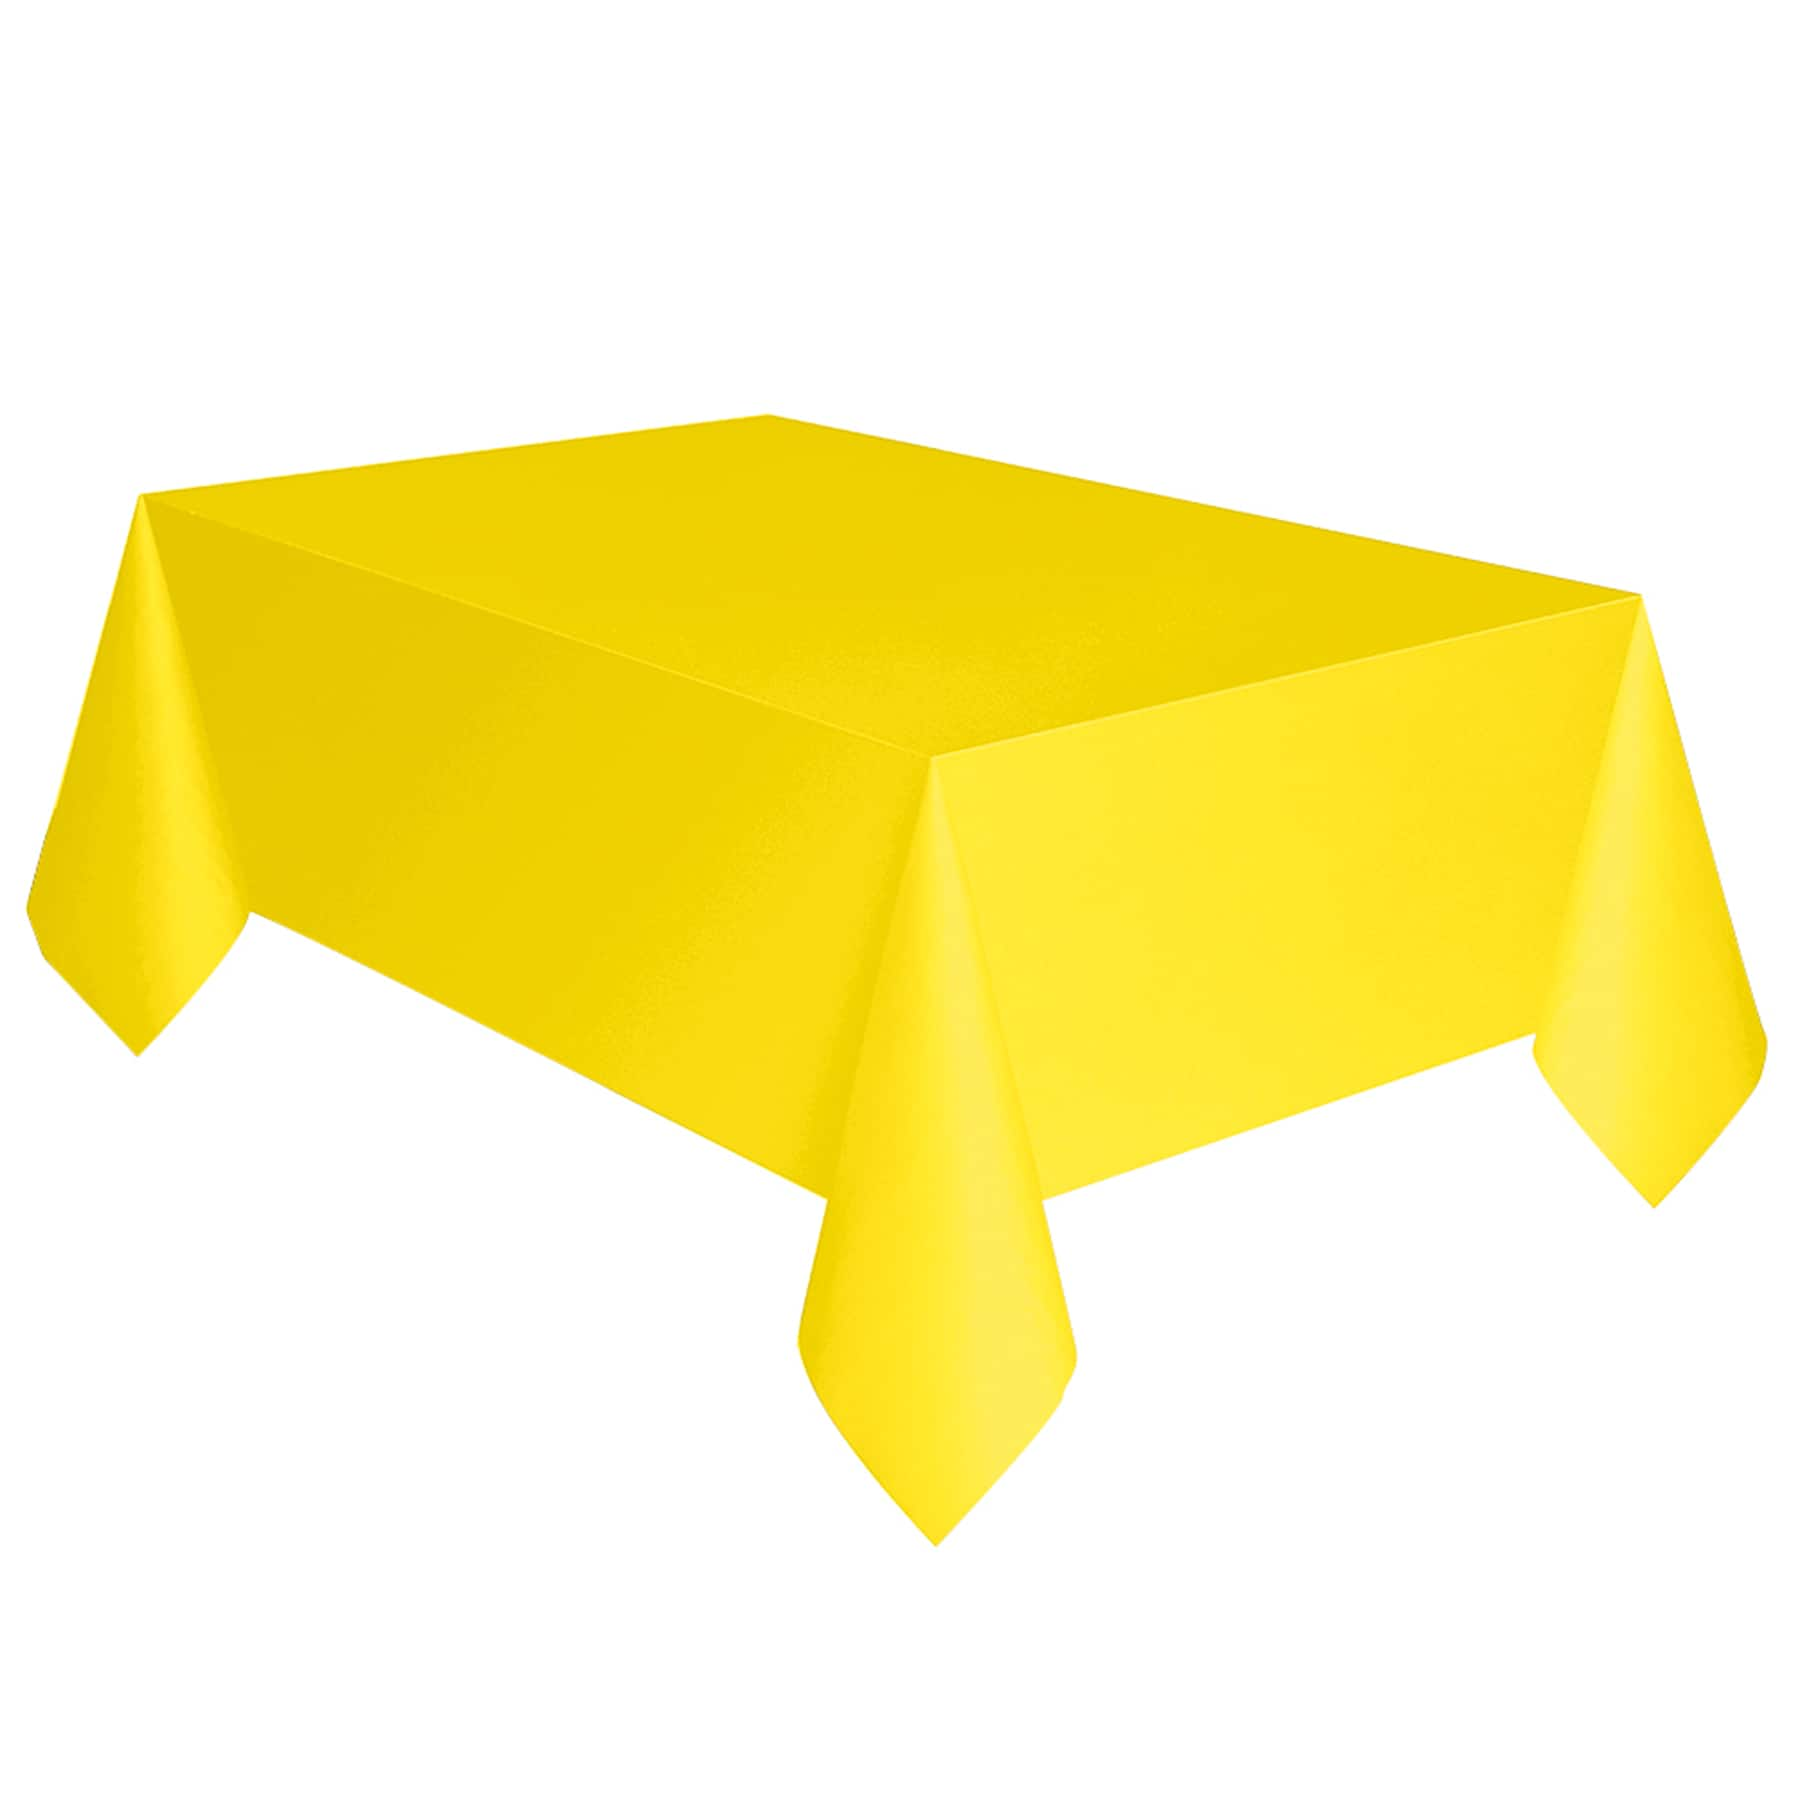 Previous  sc 1 st  Michaels Stores & Neon Yellow Plastic Table Cover | Neon Yellow Party Decorations